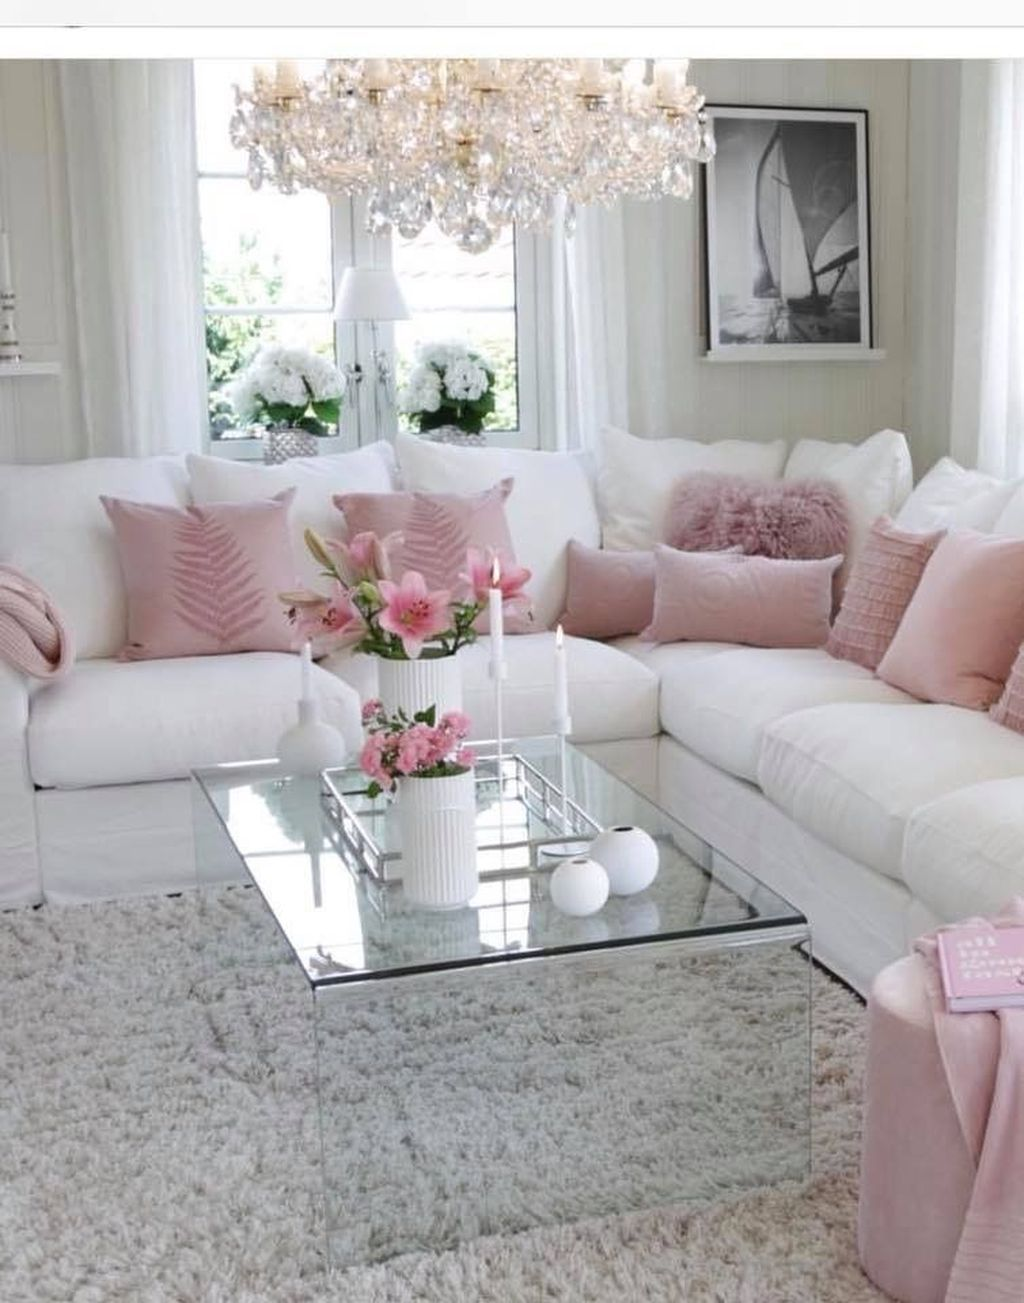 18 Inspiring Shabby Chic Living Room Ideas  Déco salon cocooning